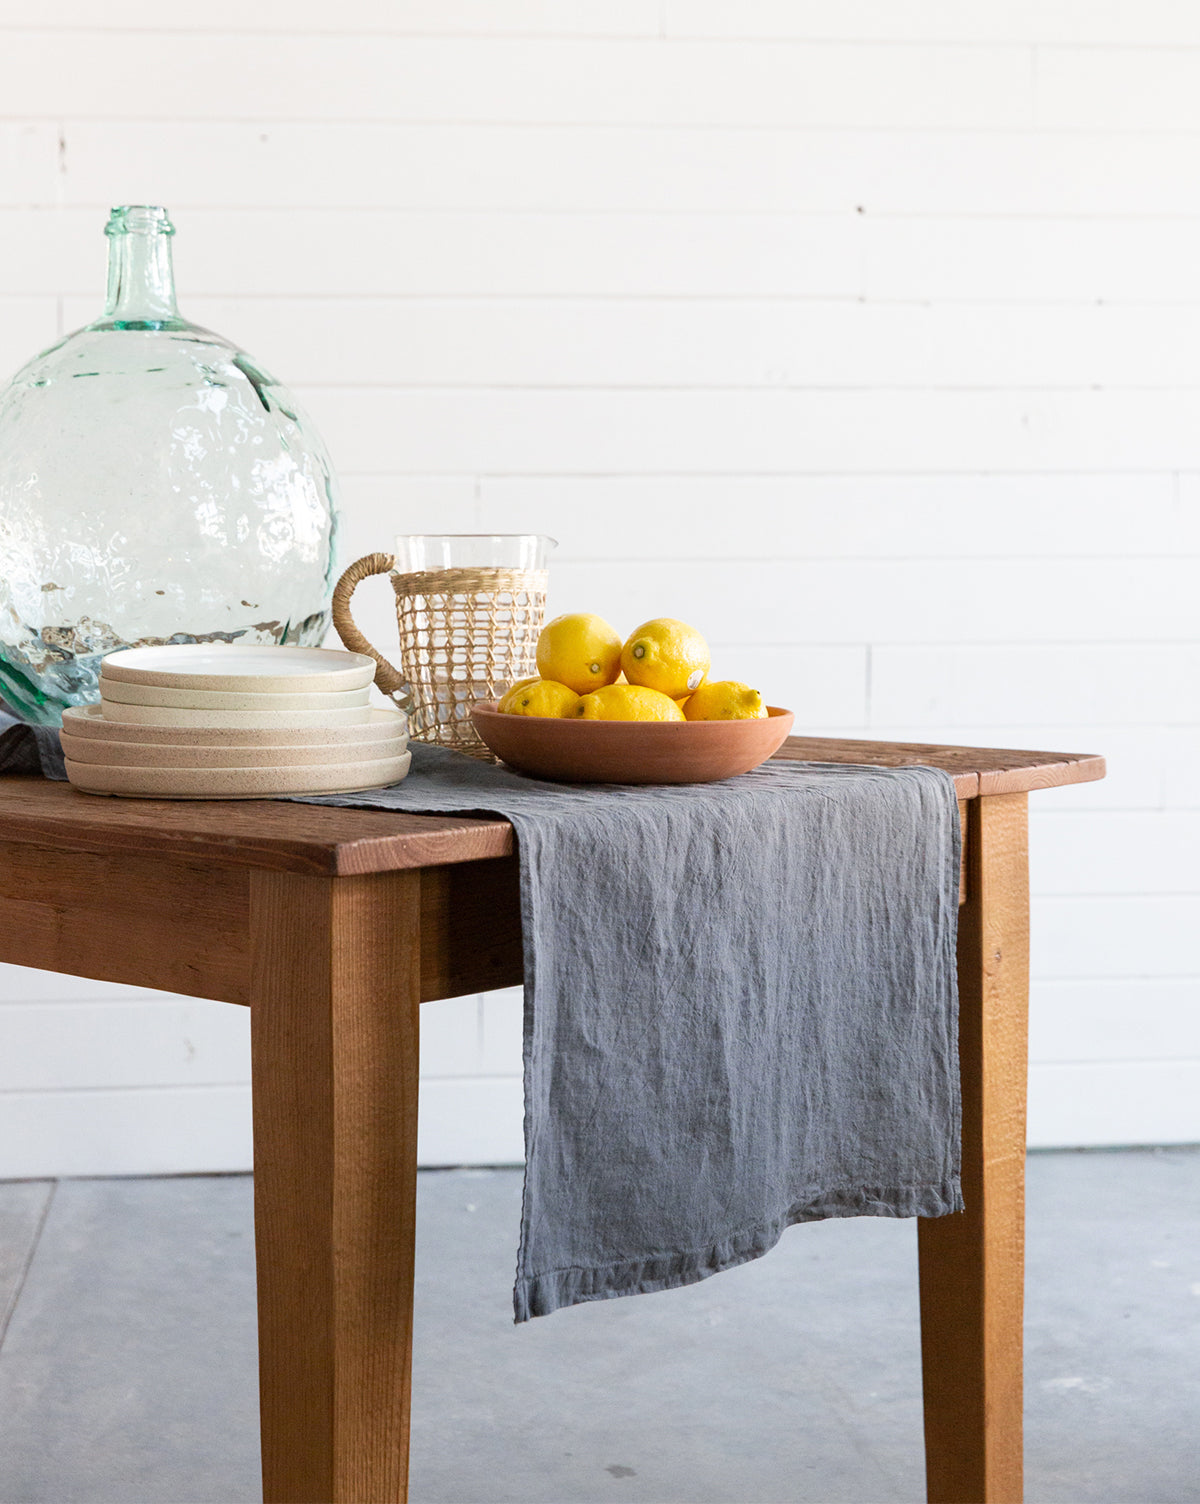 Textured Linen Table Runner